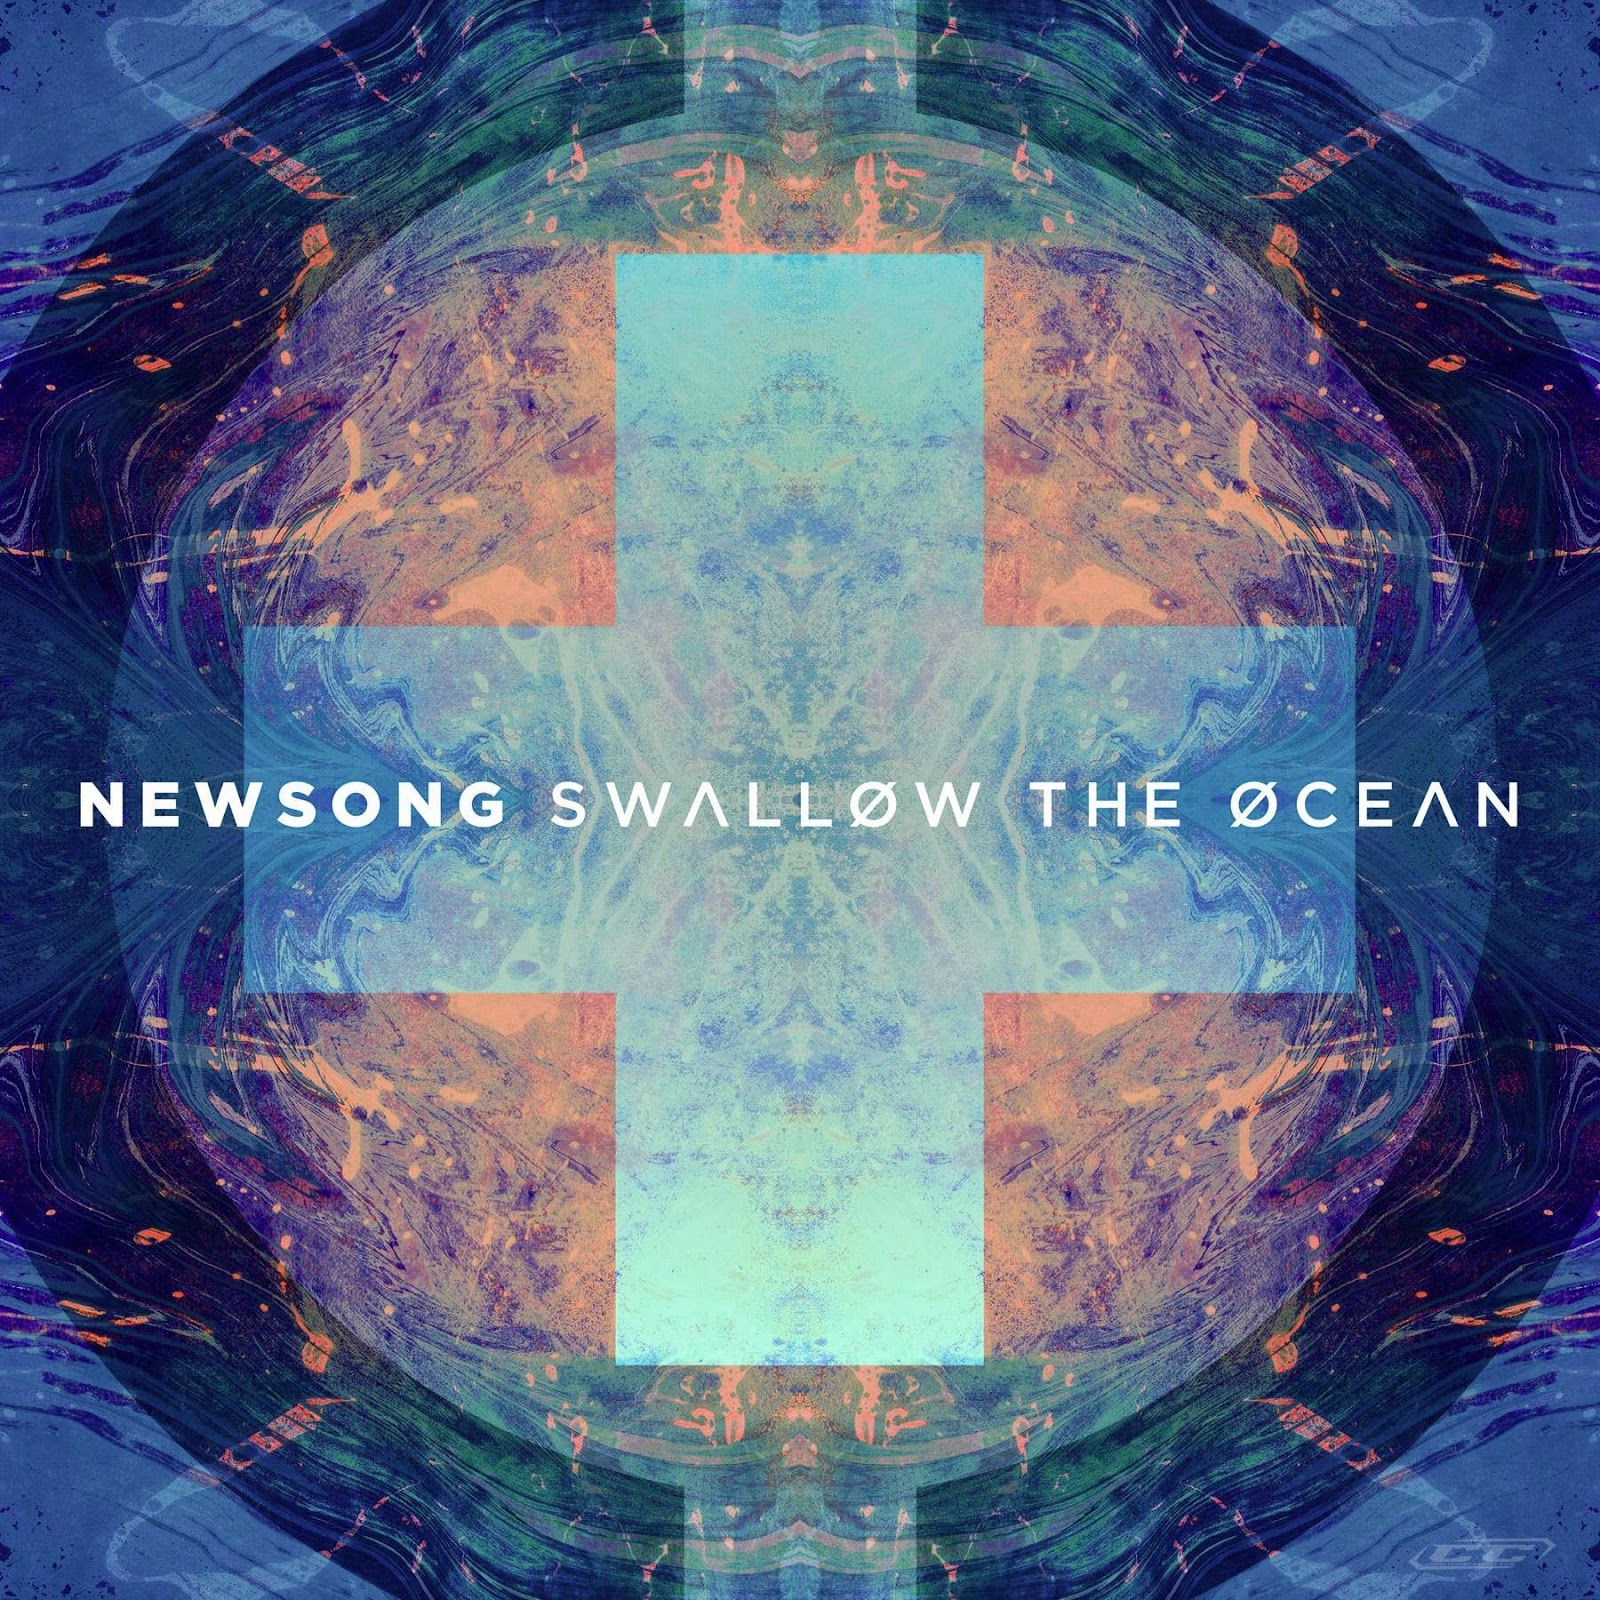 New Song - Swallow The Ocean 2013 English Christian Album Download